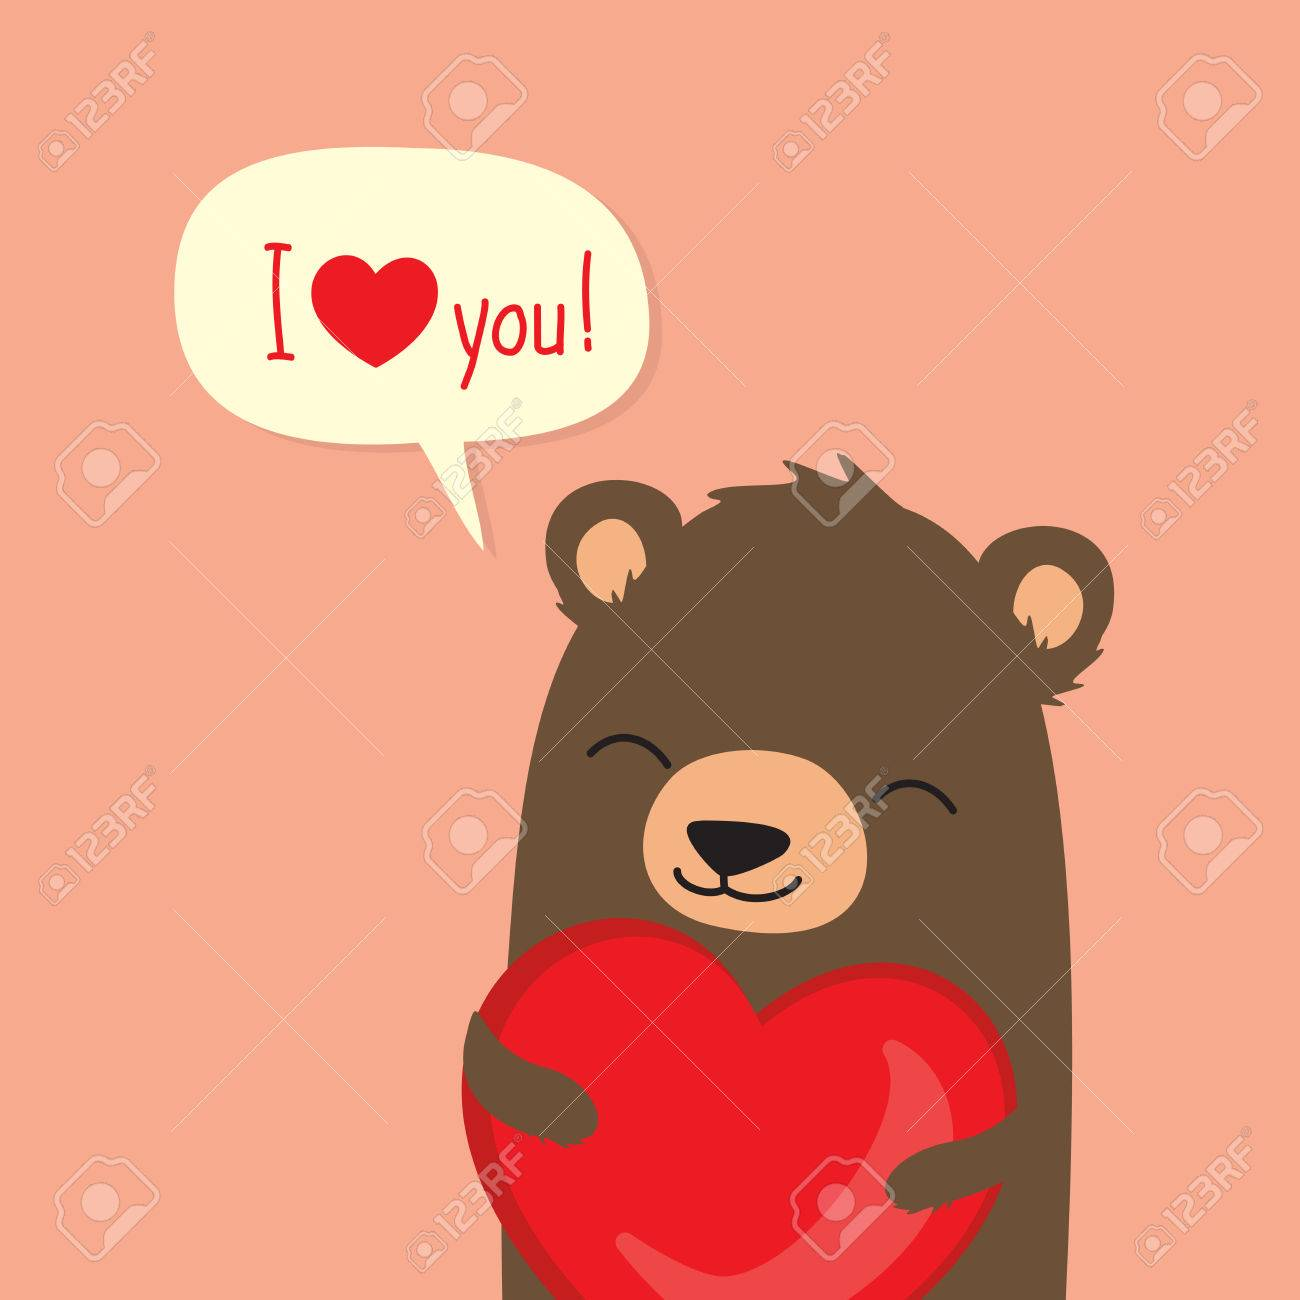 Valentines Day Card With Cute Cartoon Bear Holding Heart And